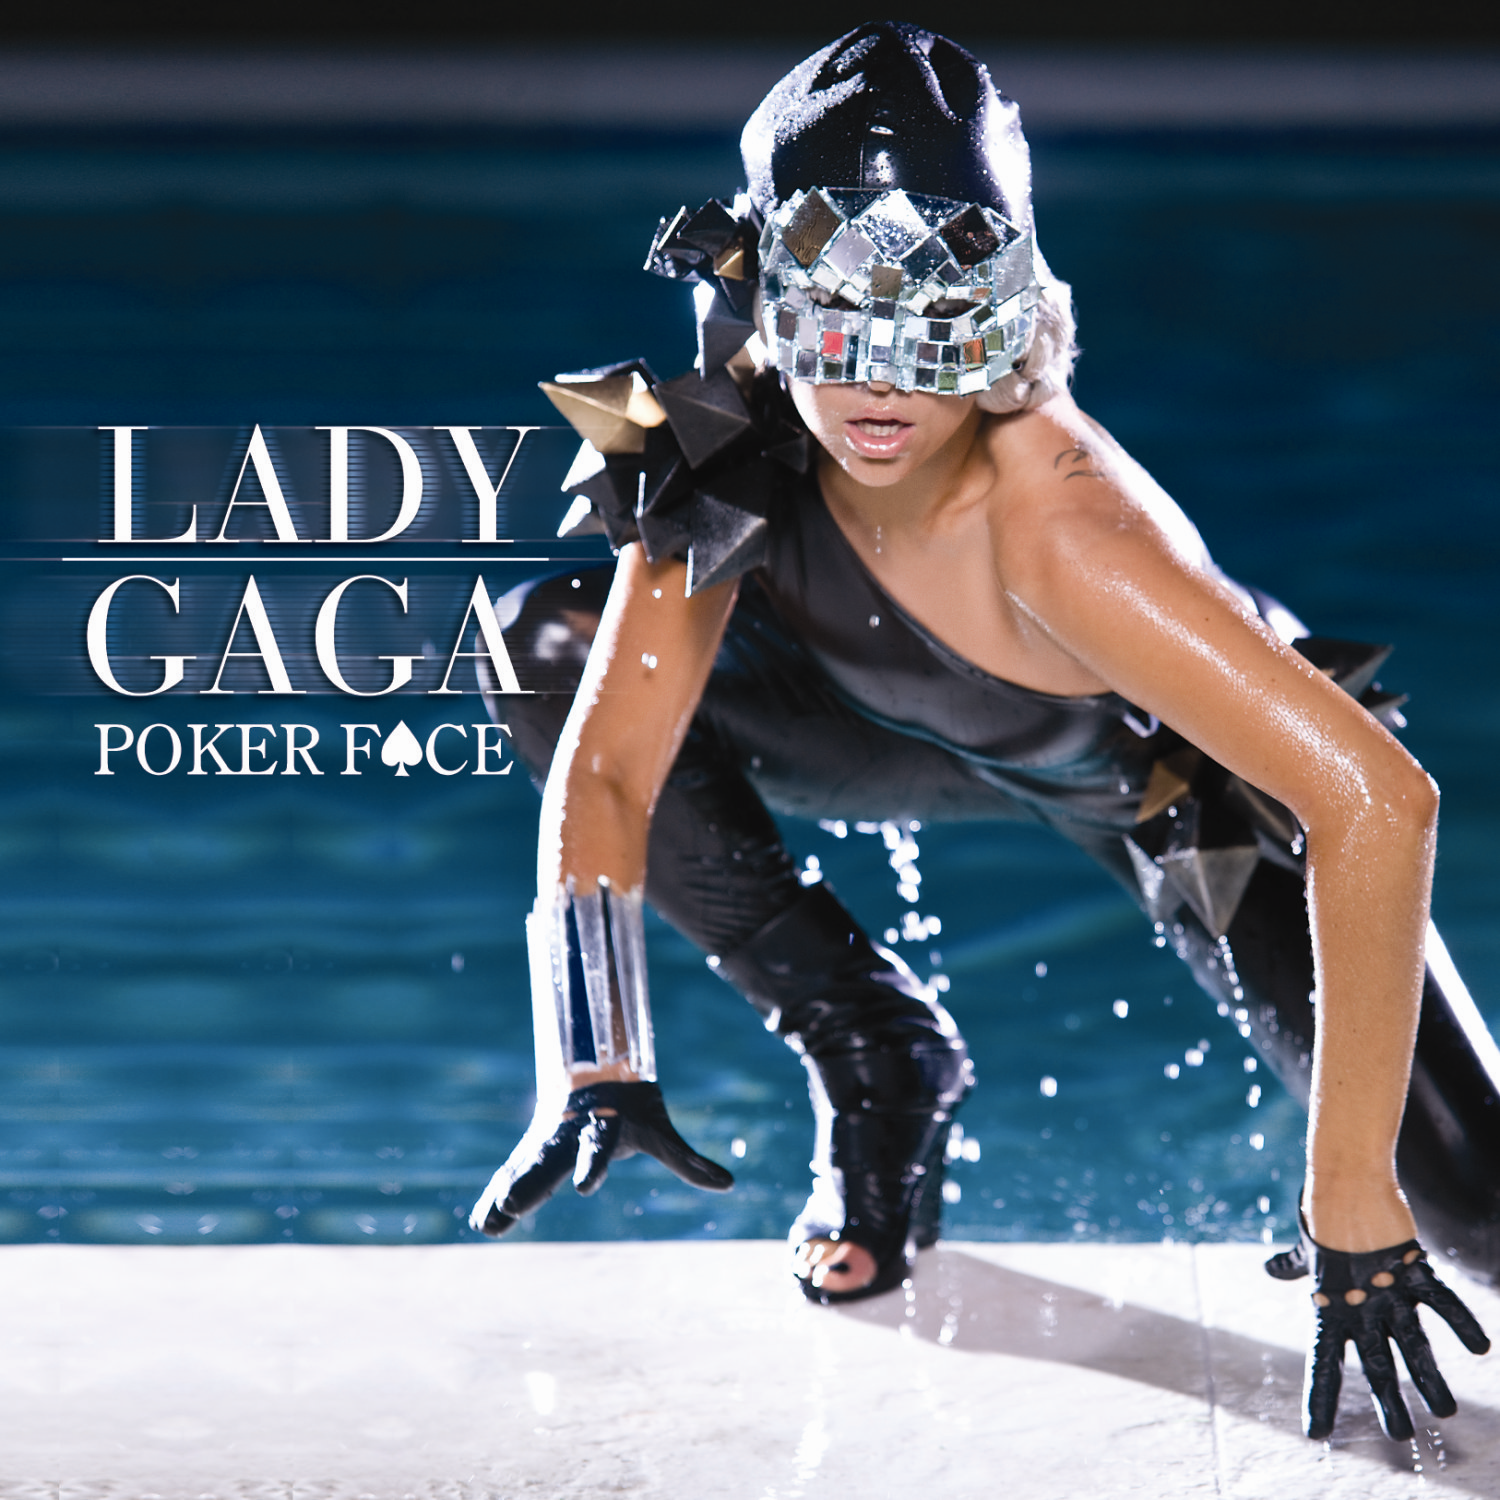 Lady_Gaga_Cover_Poker_Face.PNG